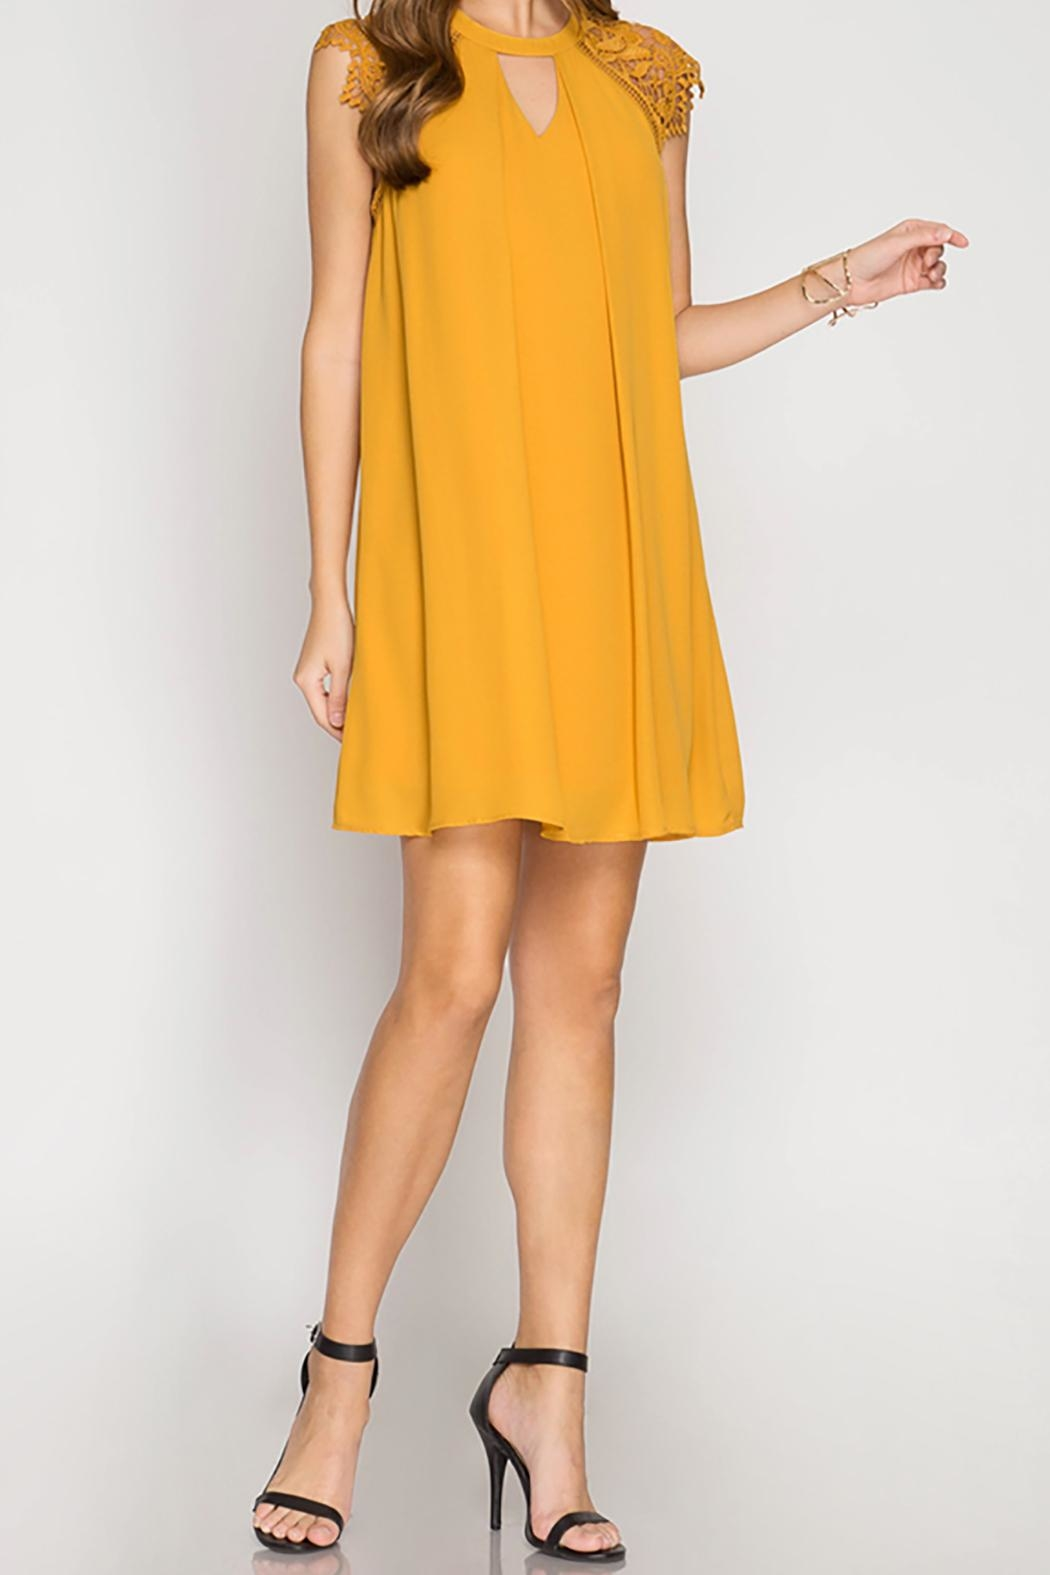 She + Sky Mustard Swing Dress - Front Cropped Image